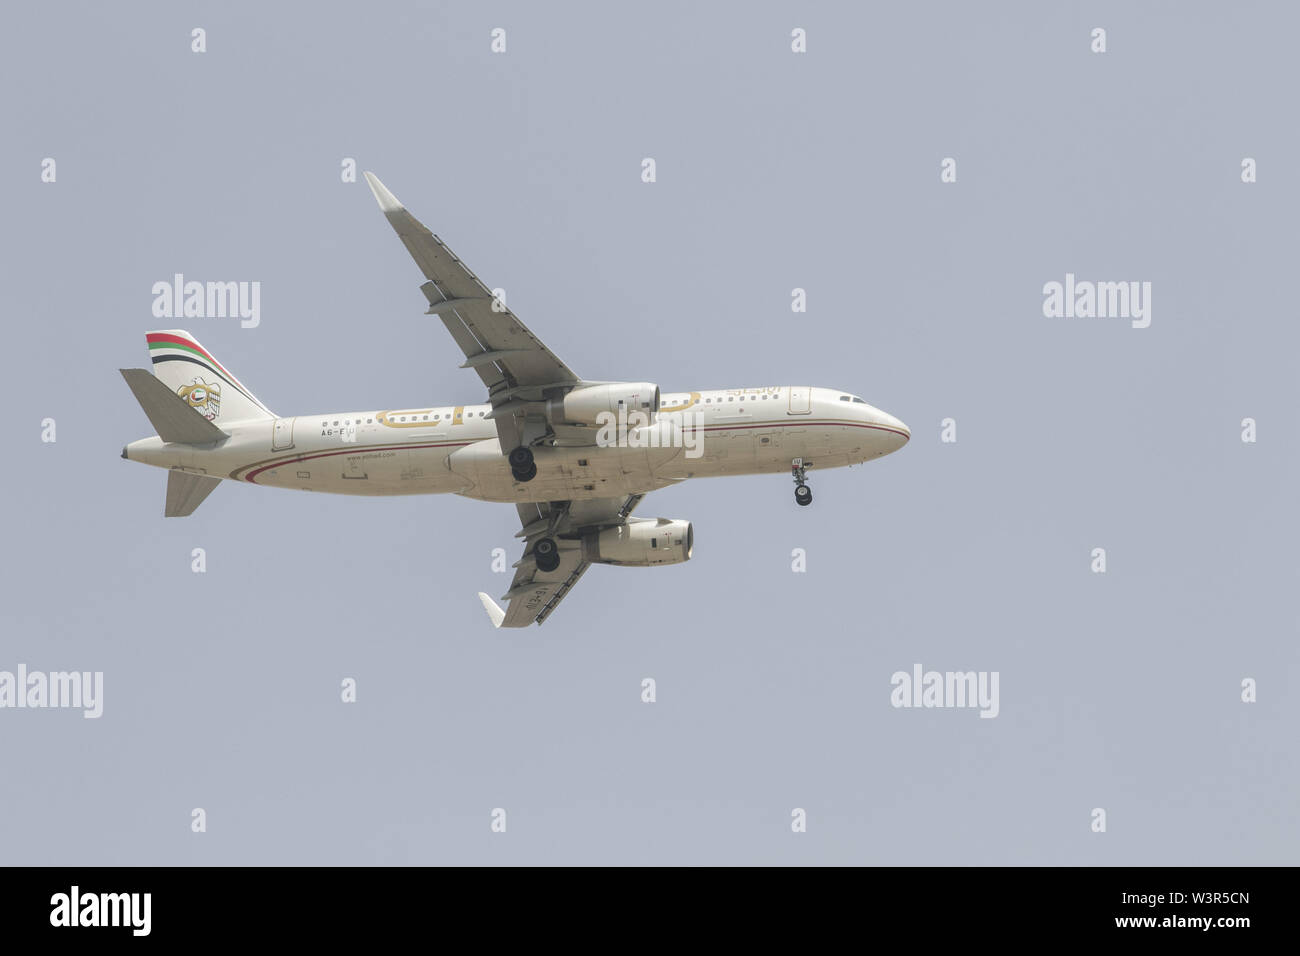 Beirut, Lebanon. 17th July, 2019. An Etihad commercial passenger jet prepares to land at Rafic Hariri International Airport in Beirut. Credit: Amer Ghazzal/SOPA Images/ZUMA Wire/Alamy Live News - Stock Image